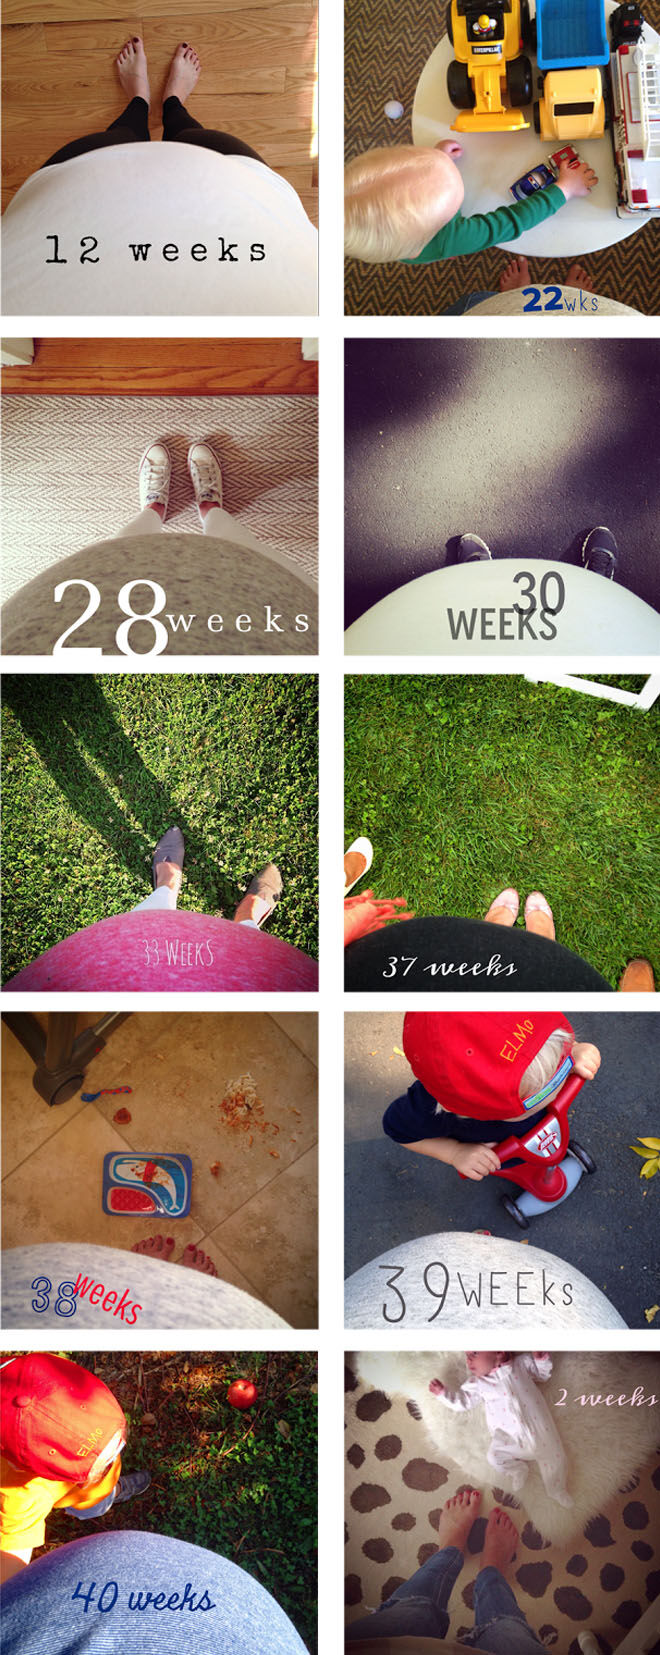 14 pregnancy week by week photo ideas: From where I stand pregnancy photos